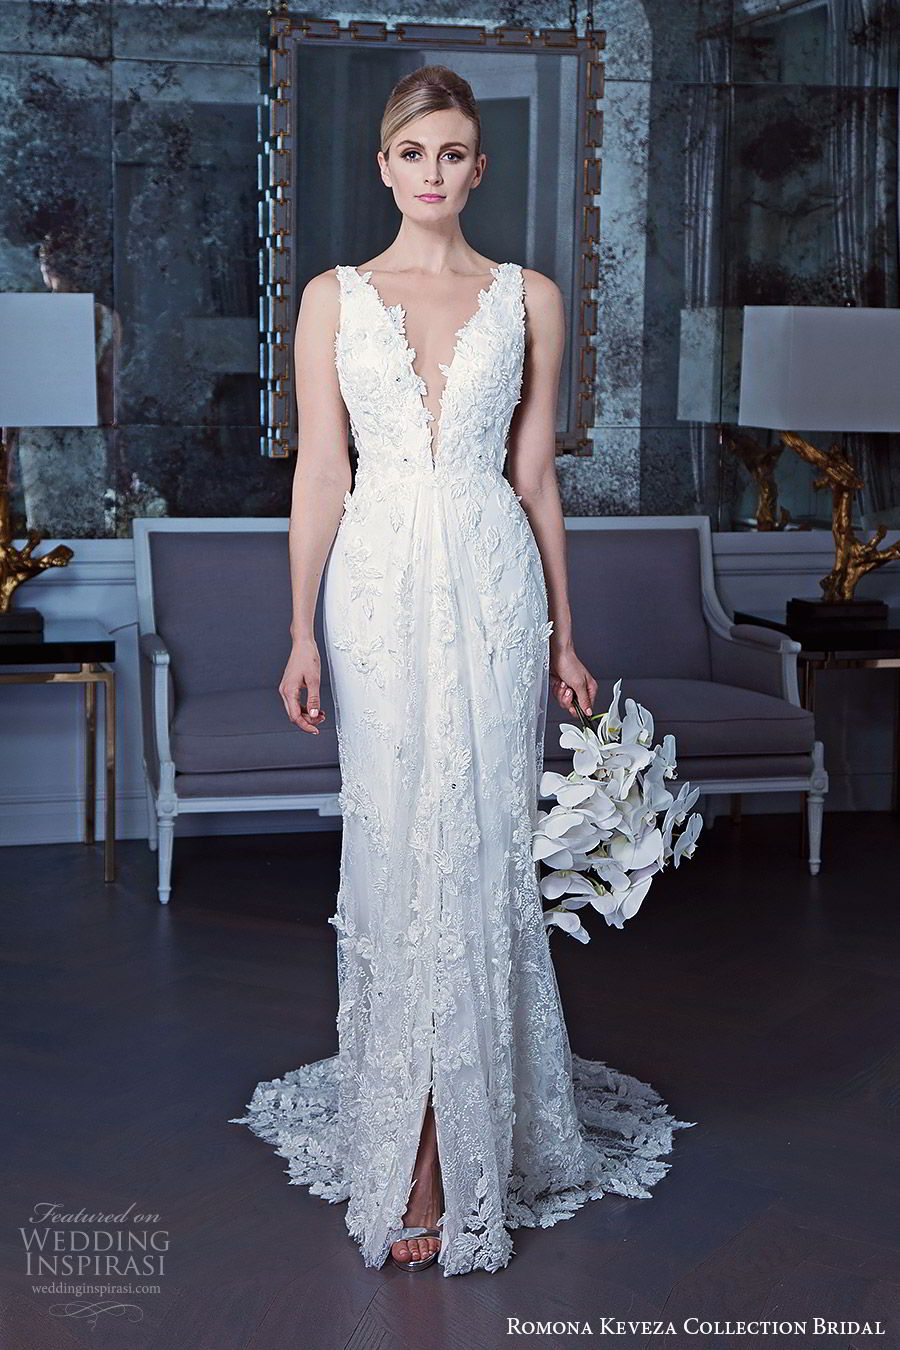 romona keveza fall 2019 bridal sleeveless thick straps plunging v neckline heavily embellished lace sheath wedding dress chapel train elegant romantic (1) mv